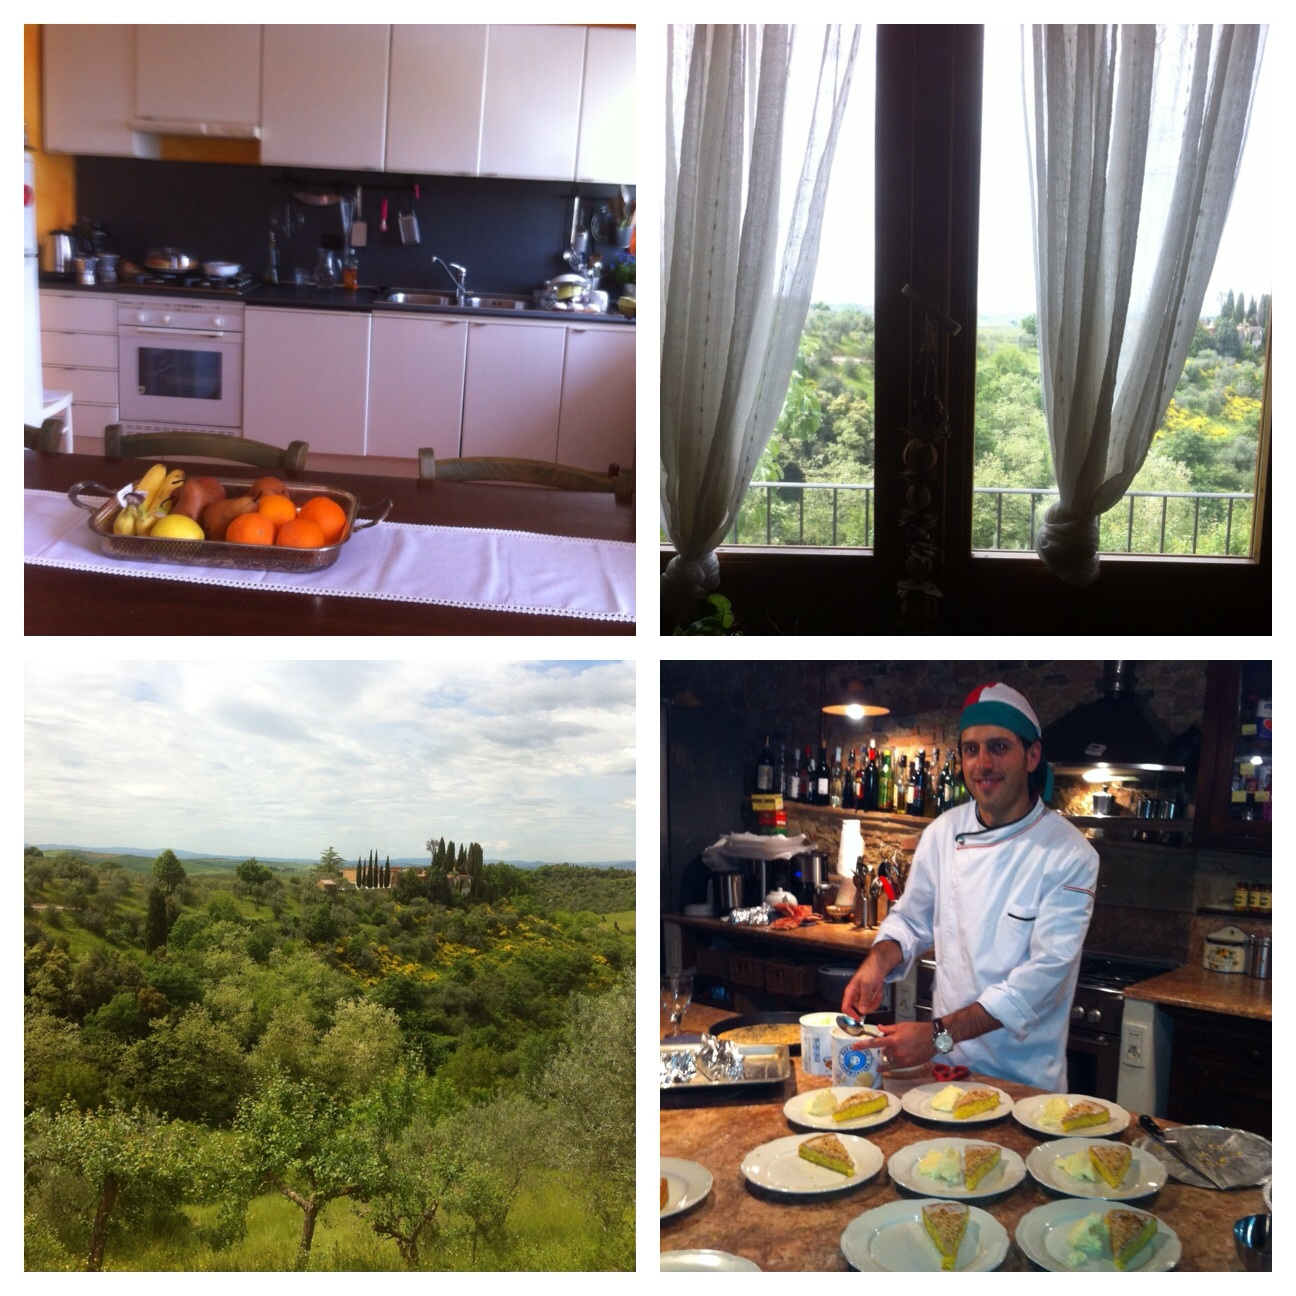 From top left: the kitchen, the views and Alessandro, the Tuscan chef.